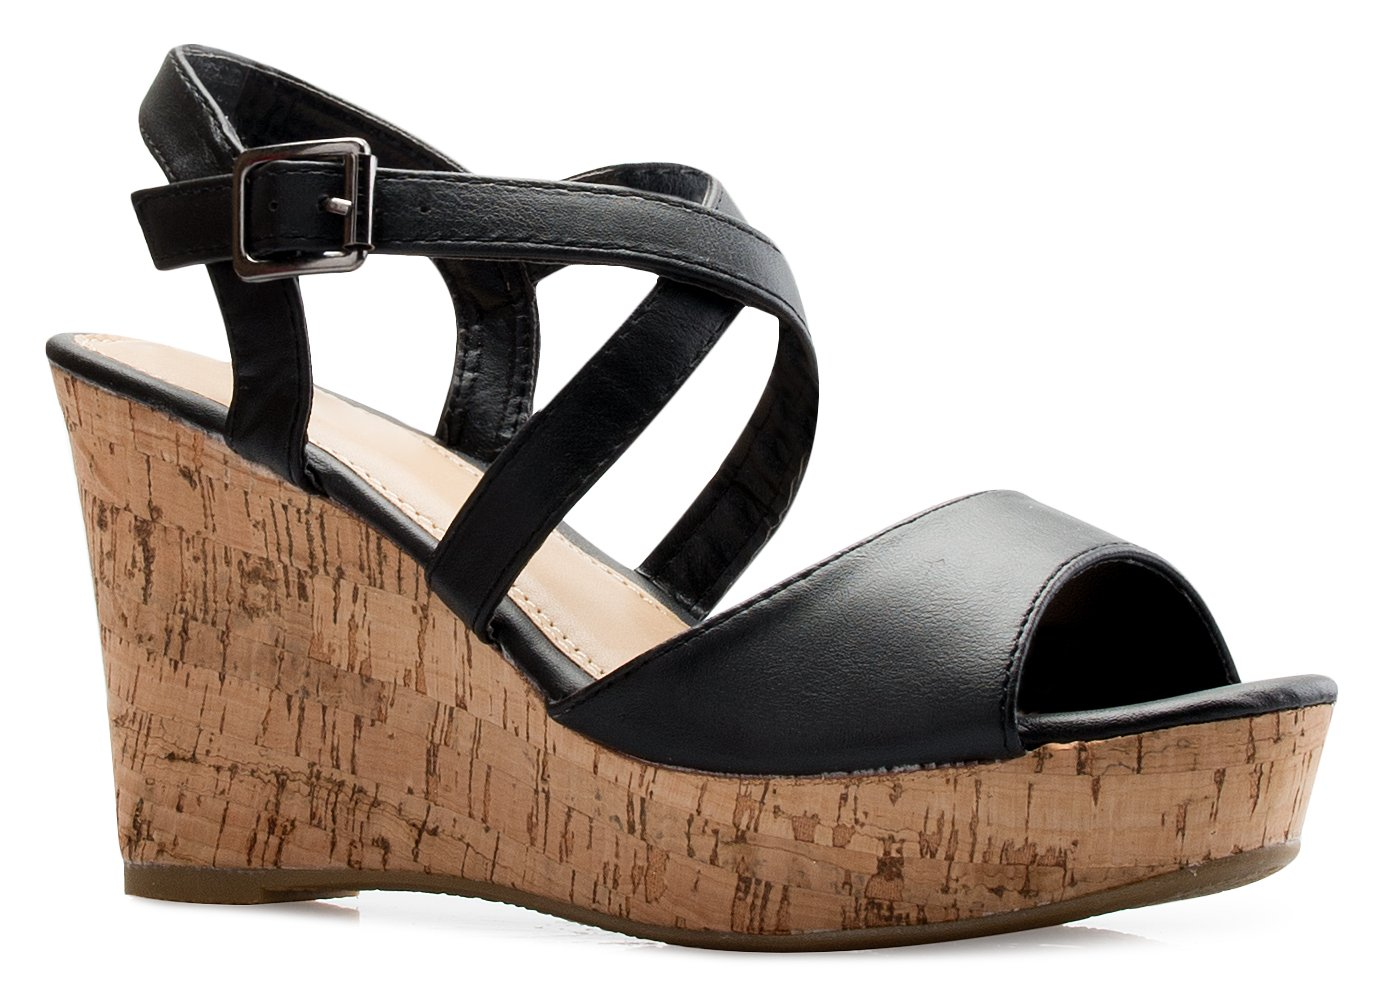 OLIVIA K Women's Open Toe Strappy Mid Wedge Heel Wood Decoration Buckle Shoes Sandals